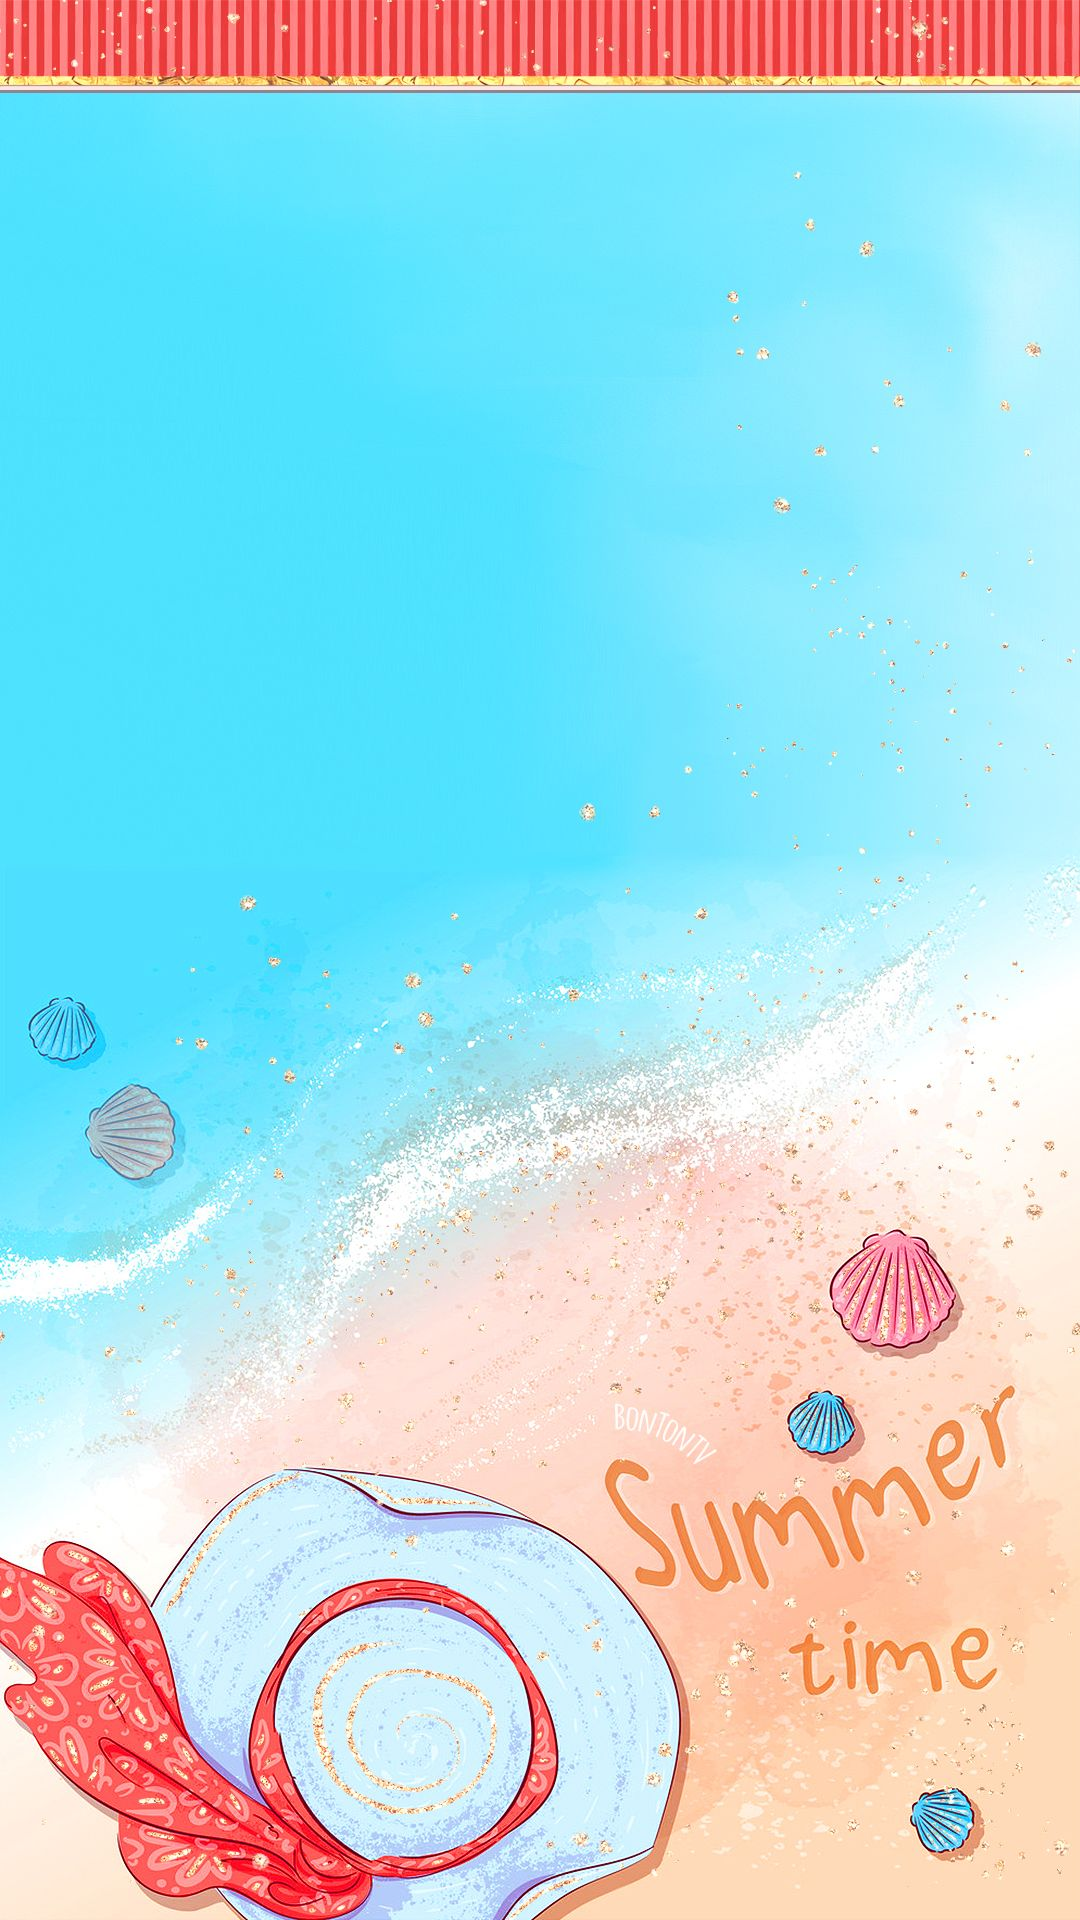 Phone Wallpapers Hd Cute Glitter Summer Beach By Bonton Tv Free Backgrounds 1080x1920 Wallpapers Summer Wallpa Iphone Wallpaper Phone Wallpaper Wallpaper